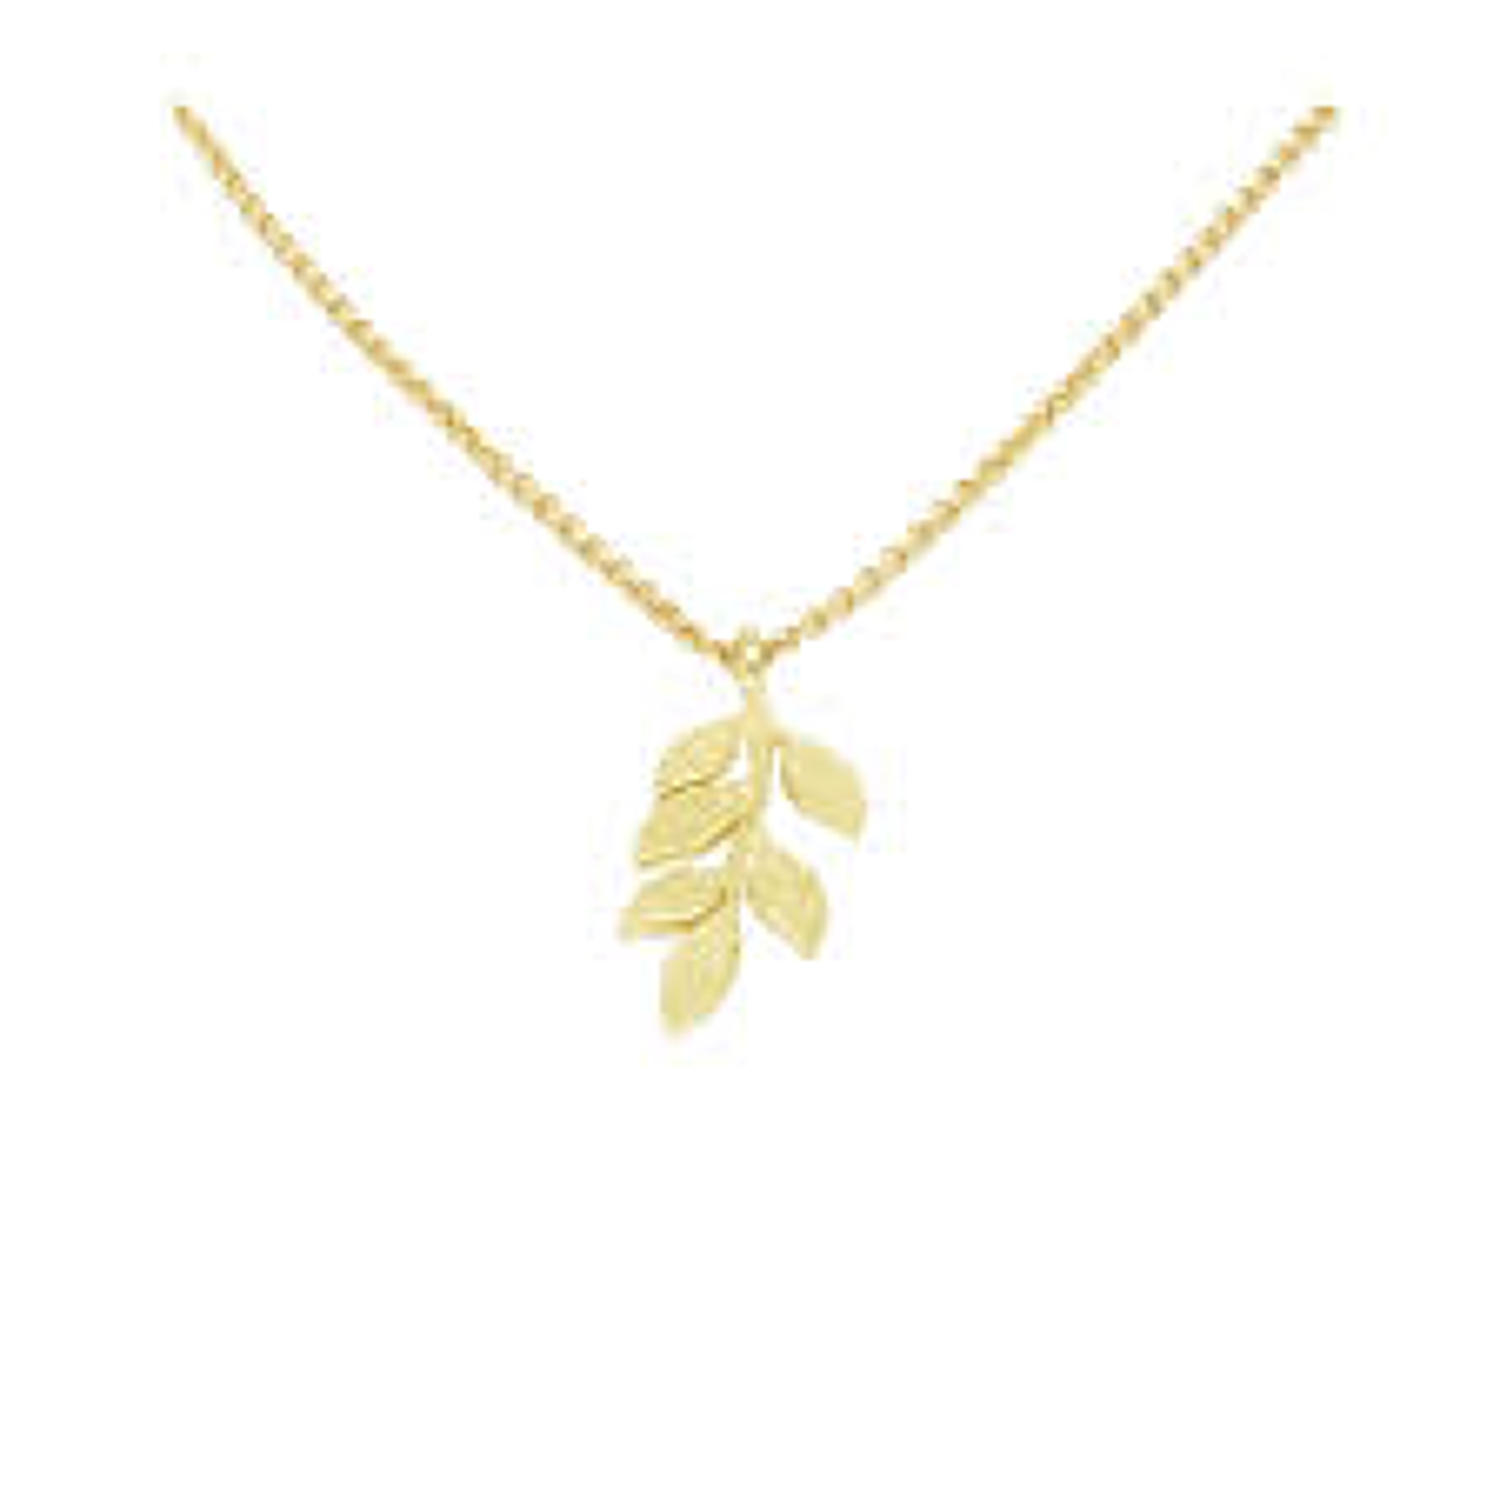 White Leaf - Simple leaves necklace brushed gold finish